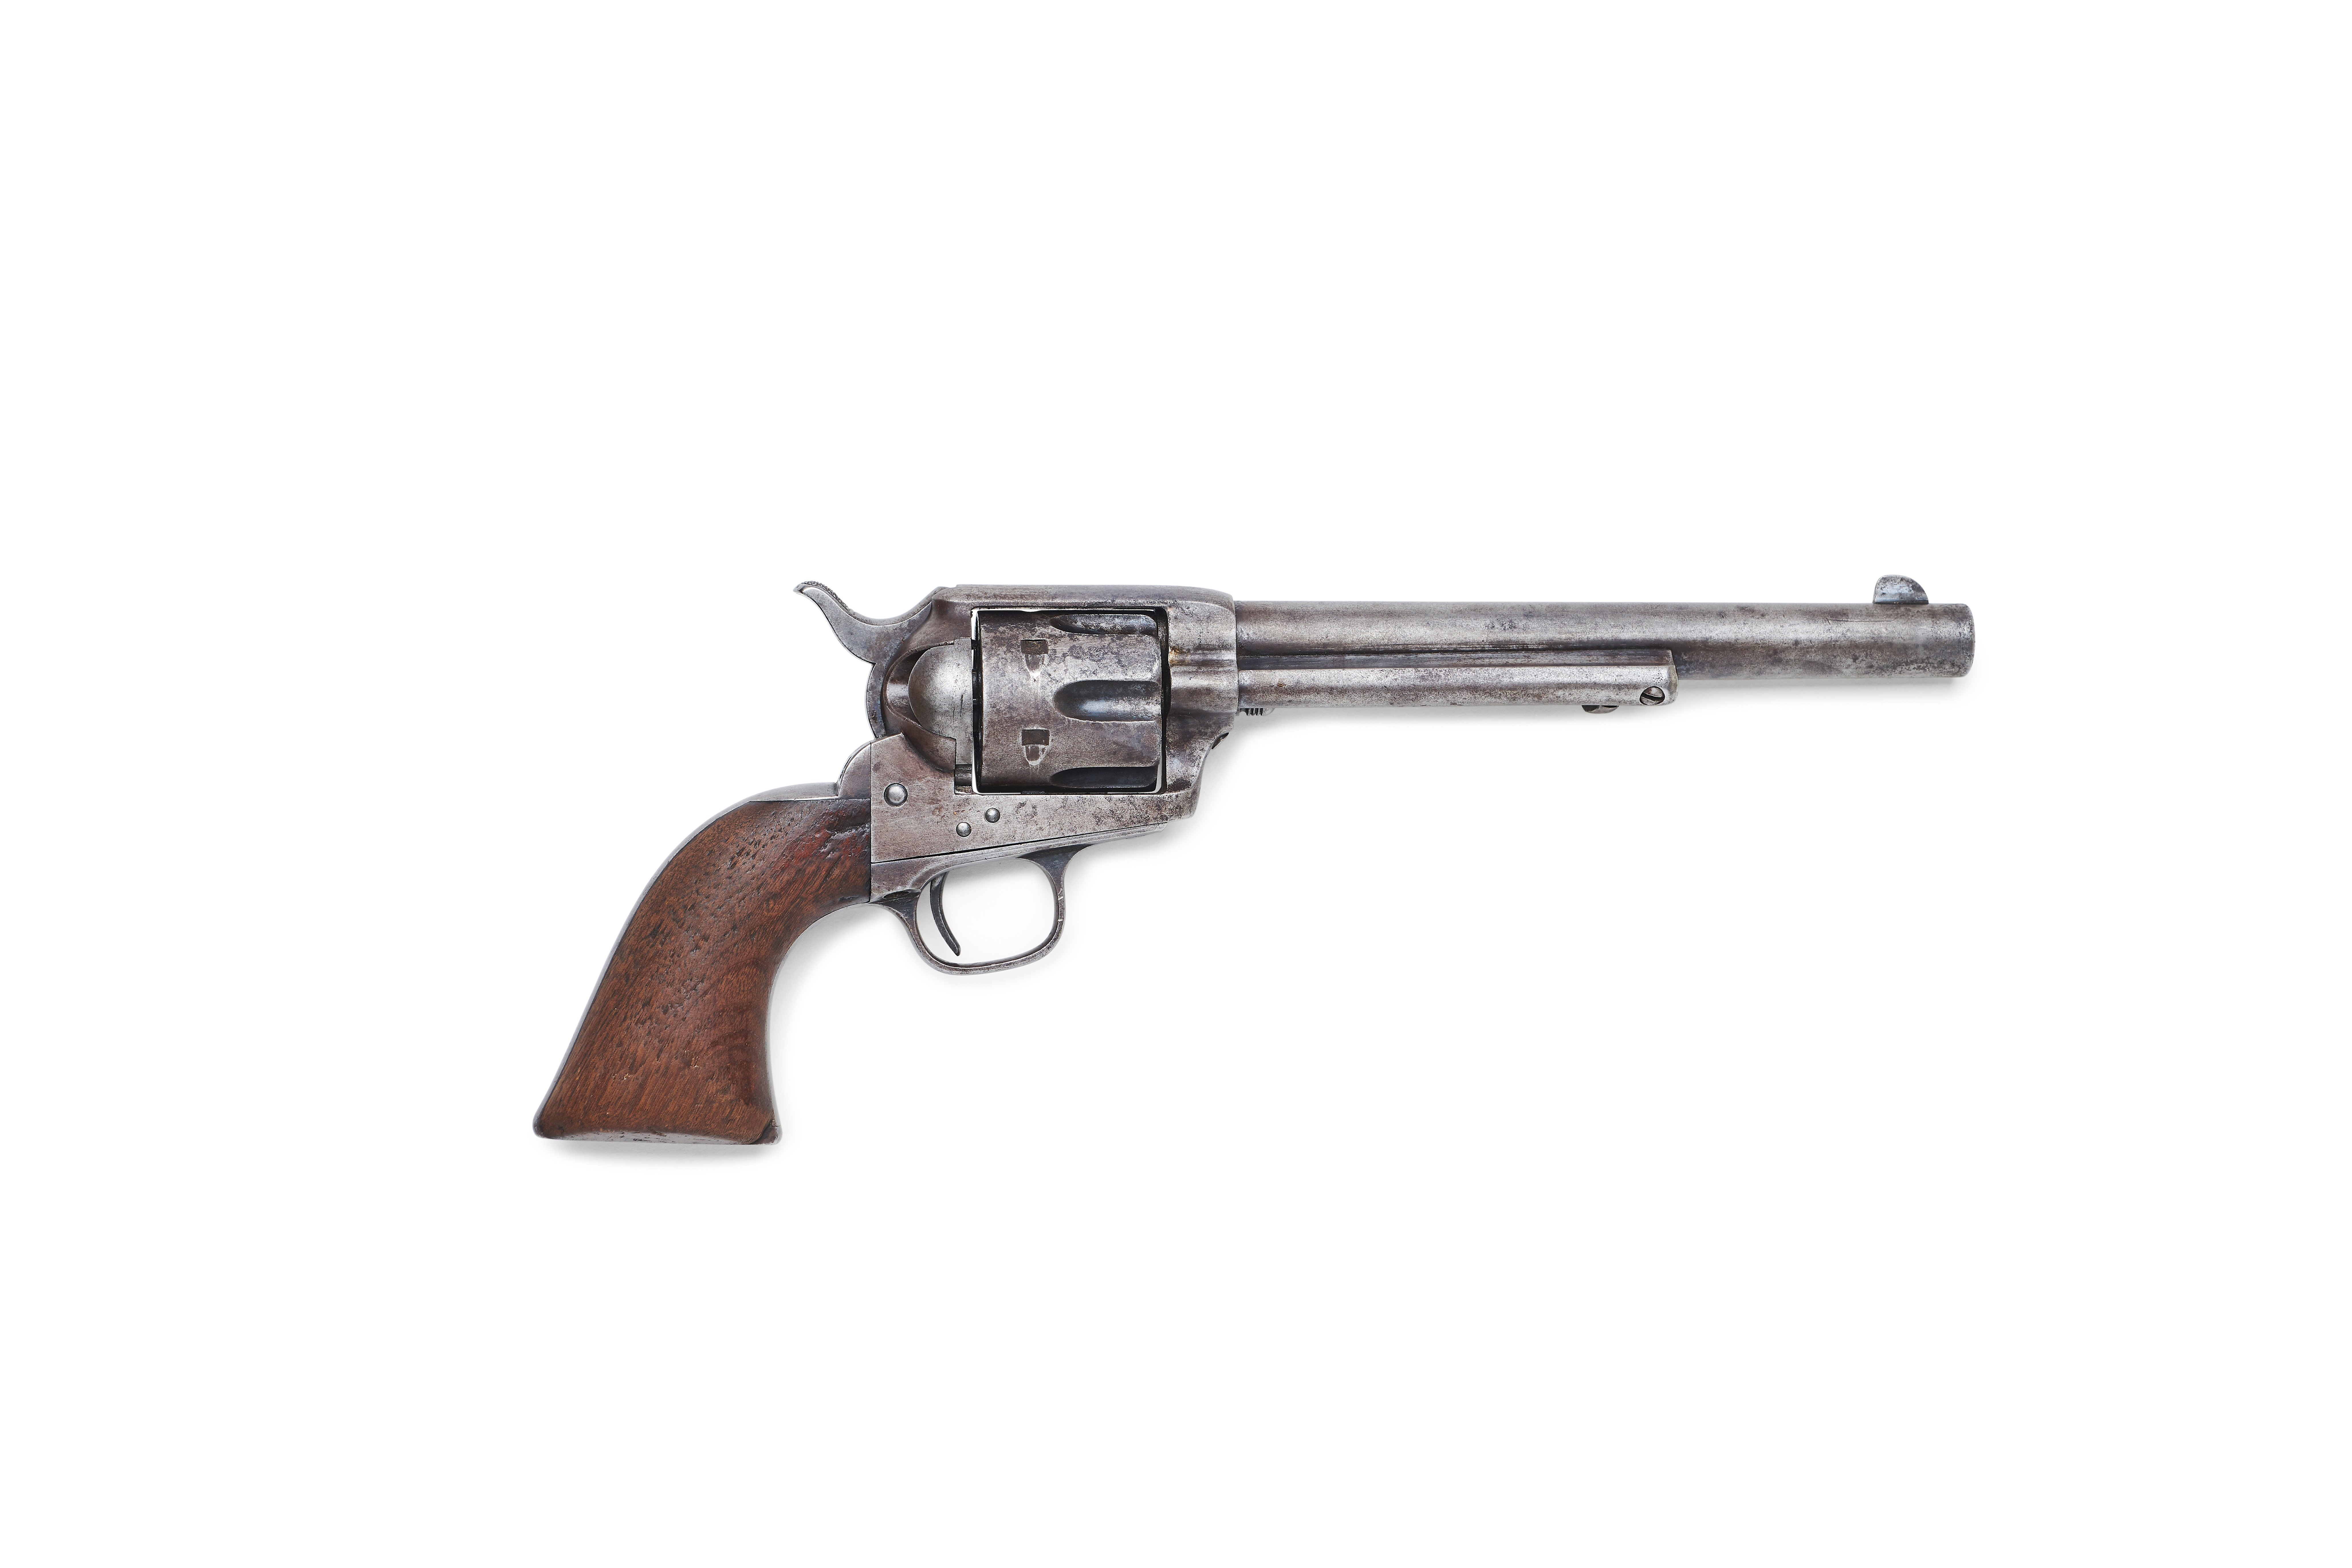 The Colt single action revolver used by Sheriff Pat Garrett to kill U.S. outlaw Billy the Kid in July 1881 in New Mexico is seen in an undated photo before an auction at Bonhams in Los Angeles, California, U.S. Courtesy of the Earle Collection and Bonhams/Handout via REUTERS